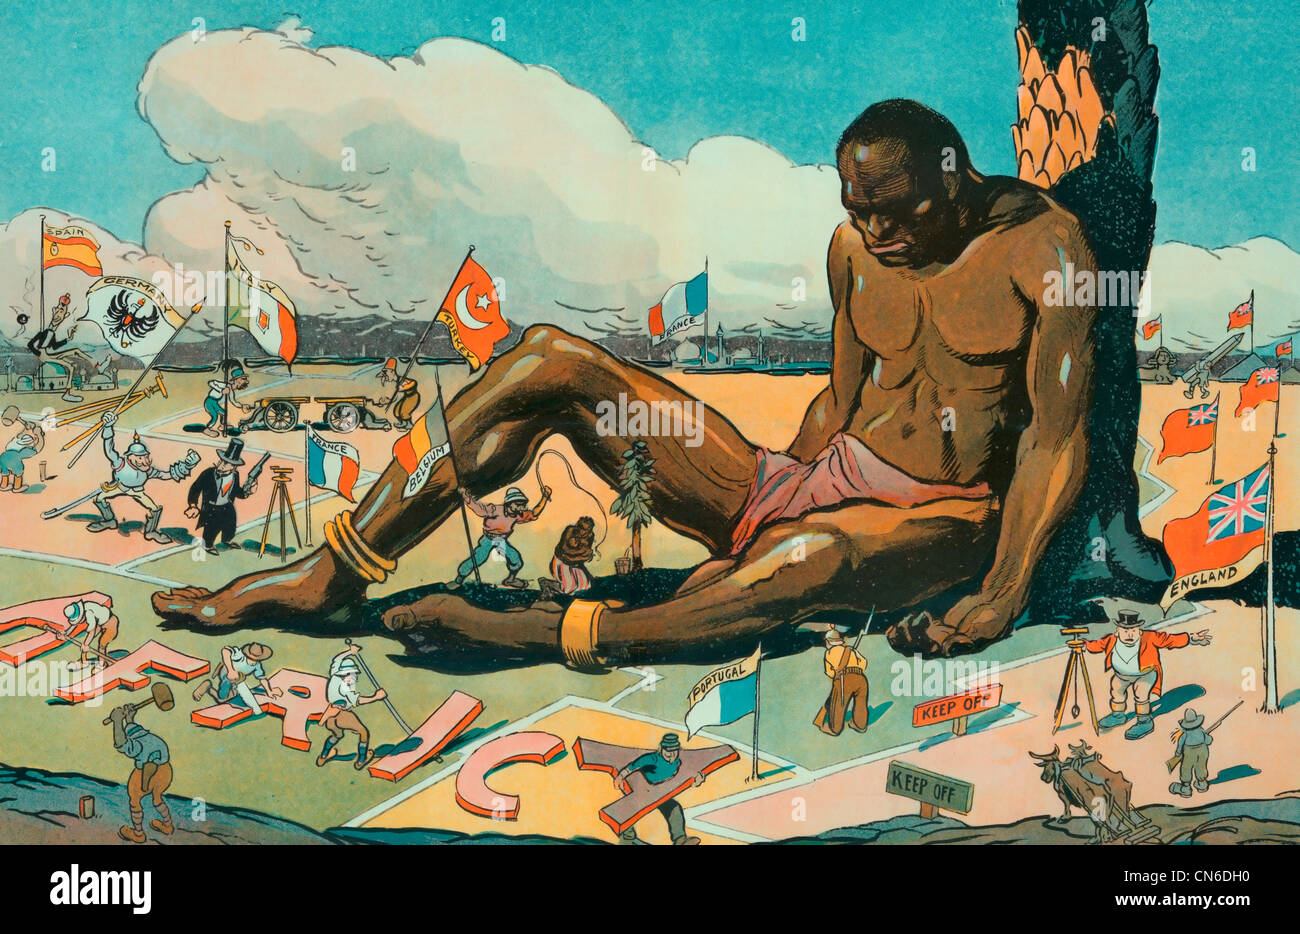 The Sleeping Sickness Illustration shows a large African man sitting, asleep, while European countries stake their - Stock Image